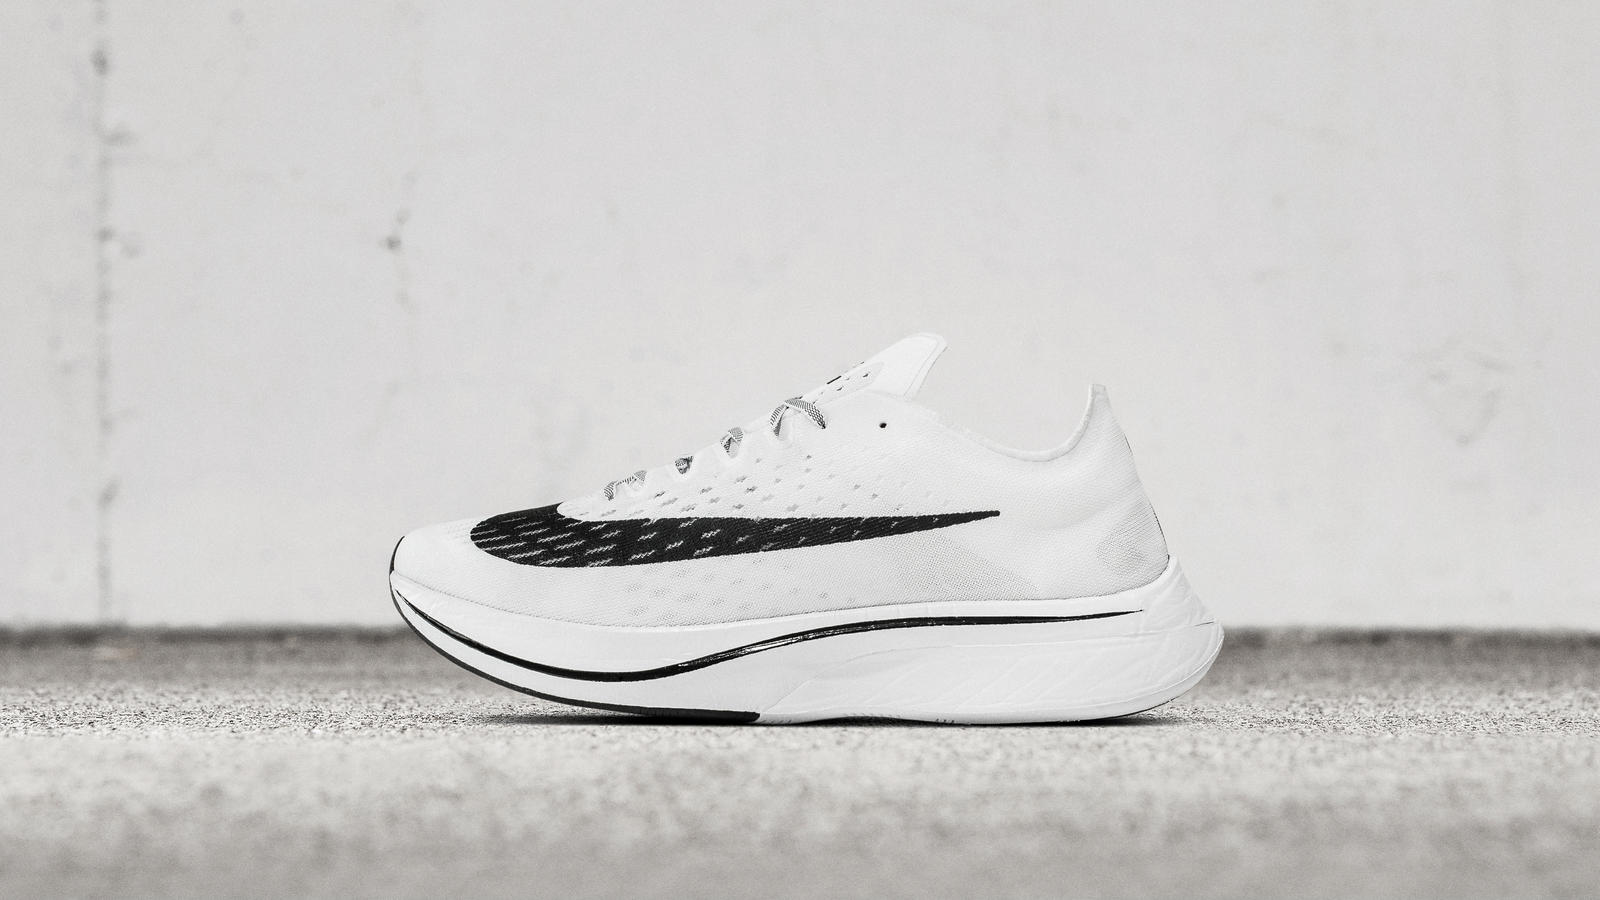 3be4f6ae2d24 Nike Zoom Vaporfly 4% - Nike News